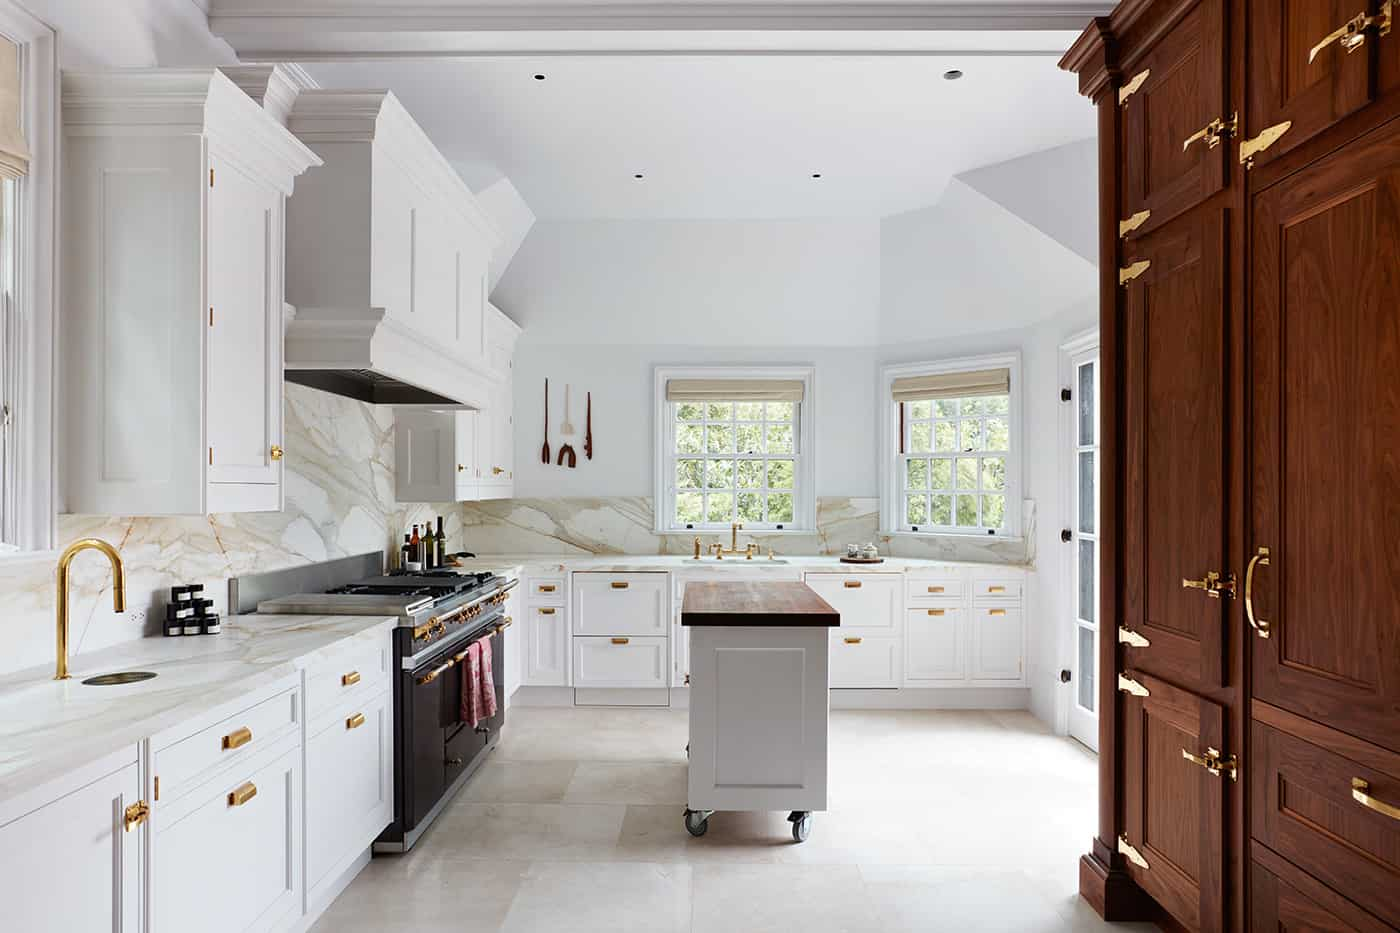 marble kitchen remodel in Pinecrest